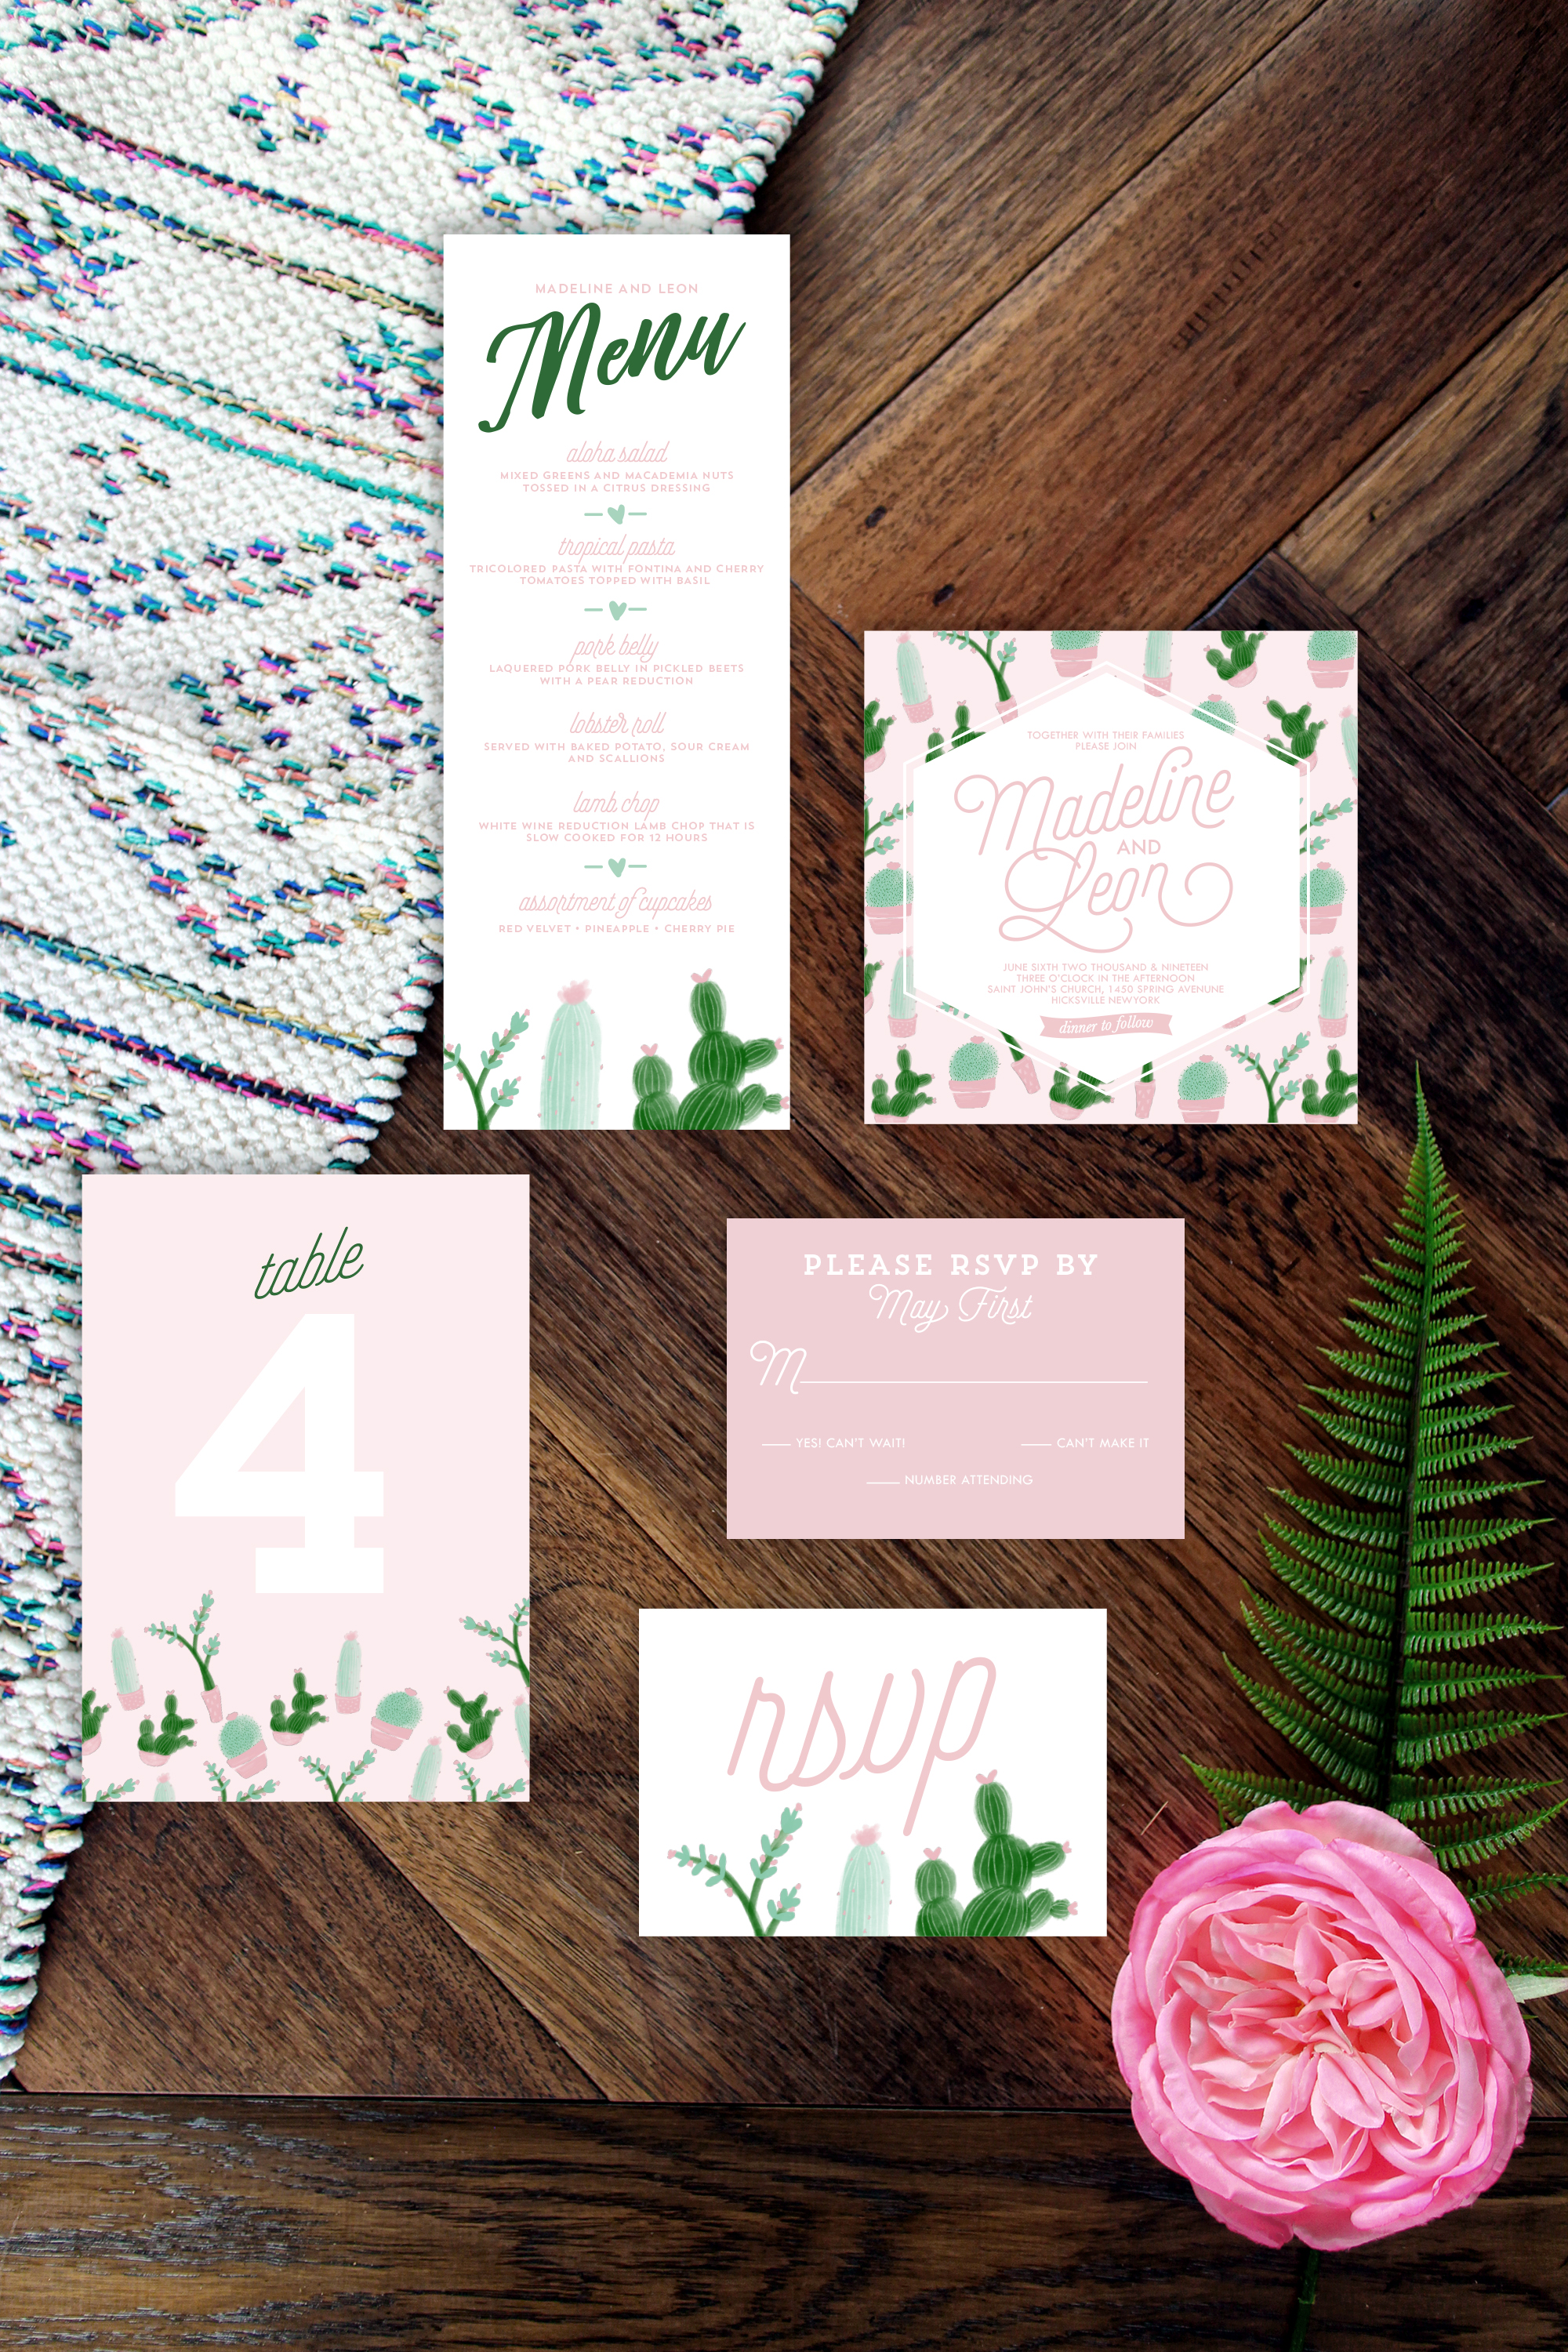 Cactus+and+Succulent+Suite+in+Blush+Pinks+and+Greens+for+Your+Wedding+and+Evenet!+YellowHeartArt.jpeg